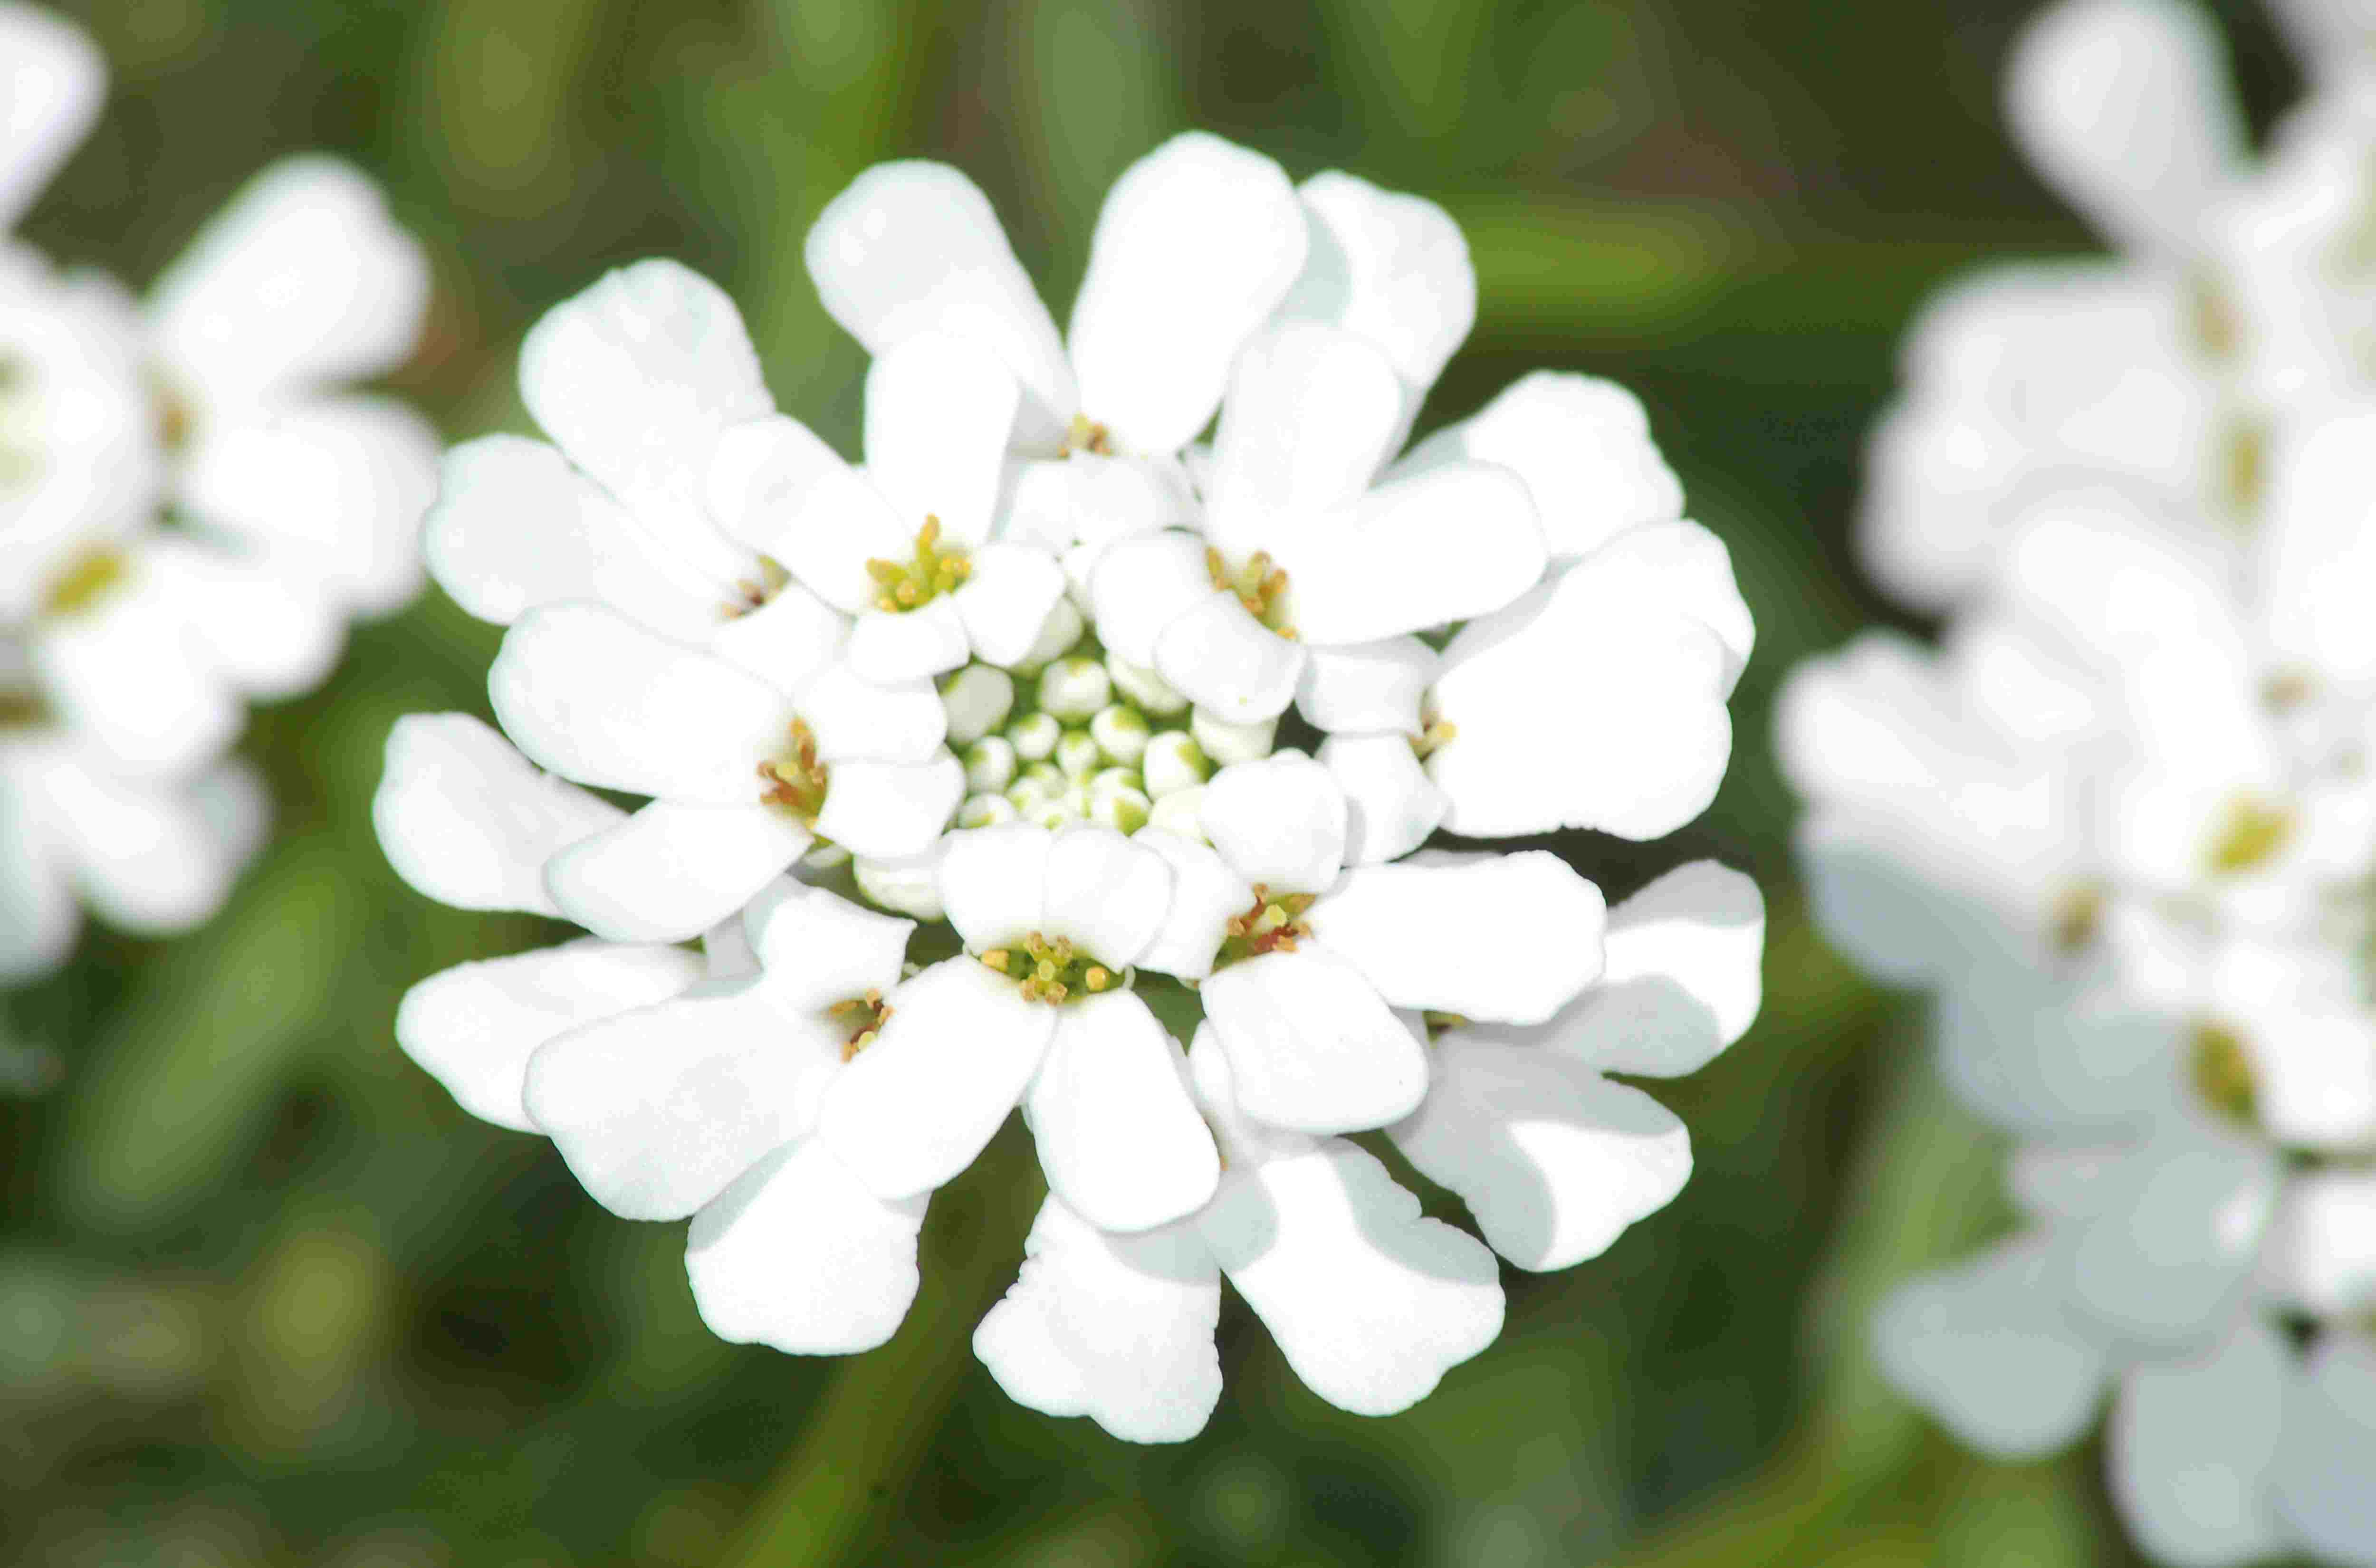 Candytuft's bloom (image) has an interesting petal pattern. It is a white perennial.